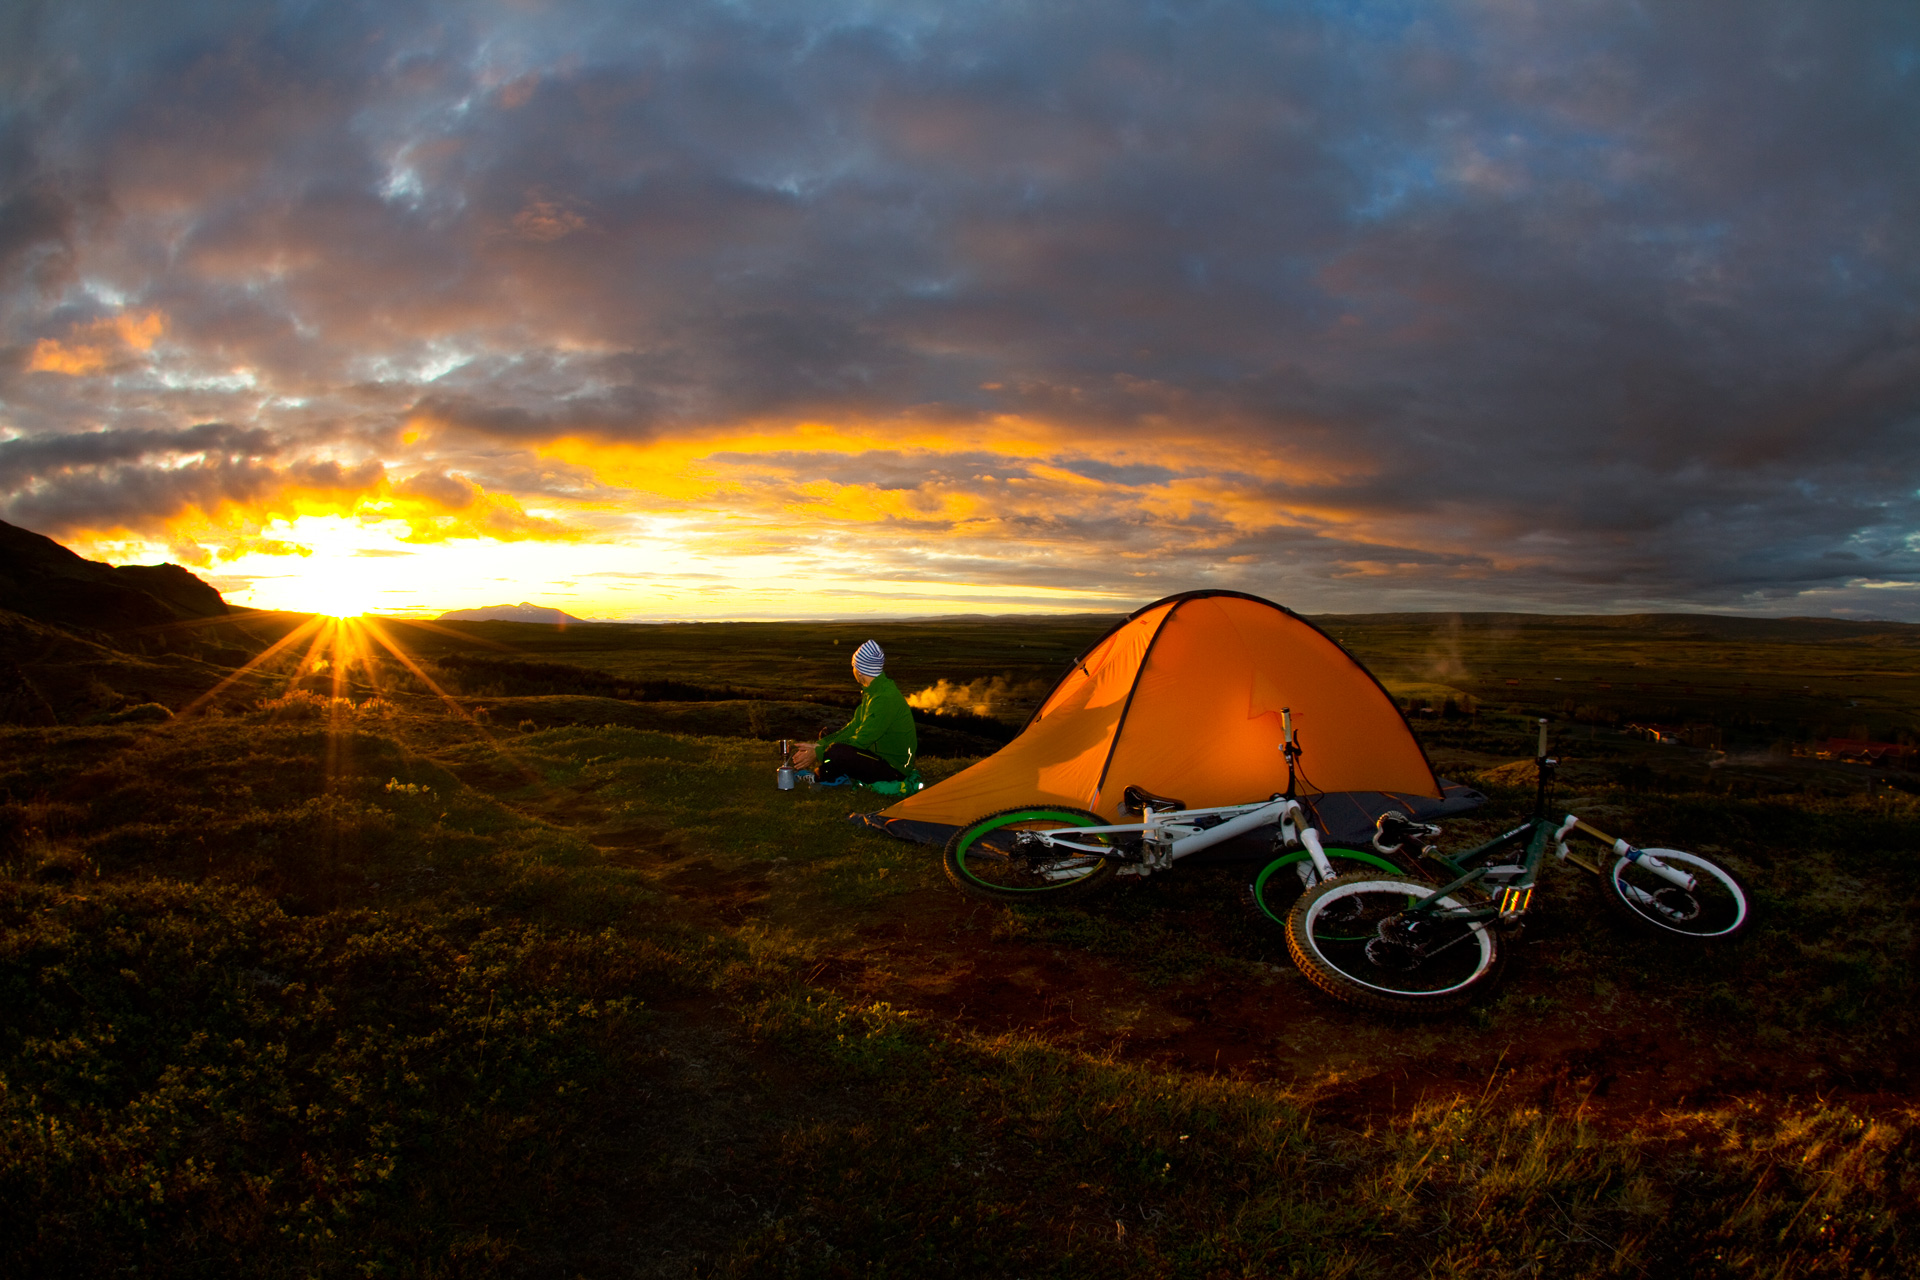 VAUDE-Visions-Wallpapers-for-free-Bastian-Morell-Sunset-in-Iceland-mountainbiking-wallpaper-wp48011653